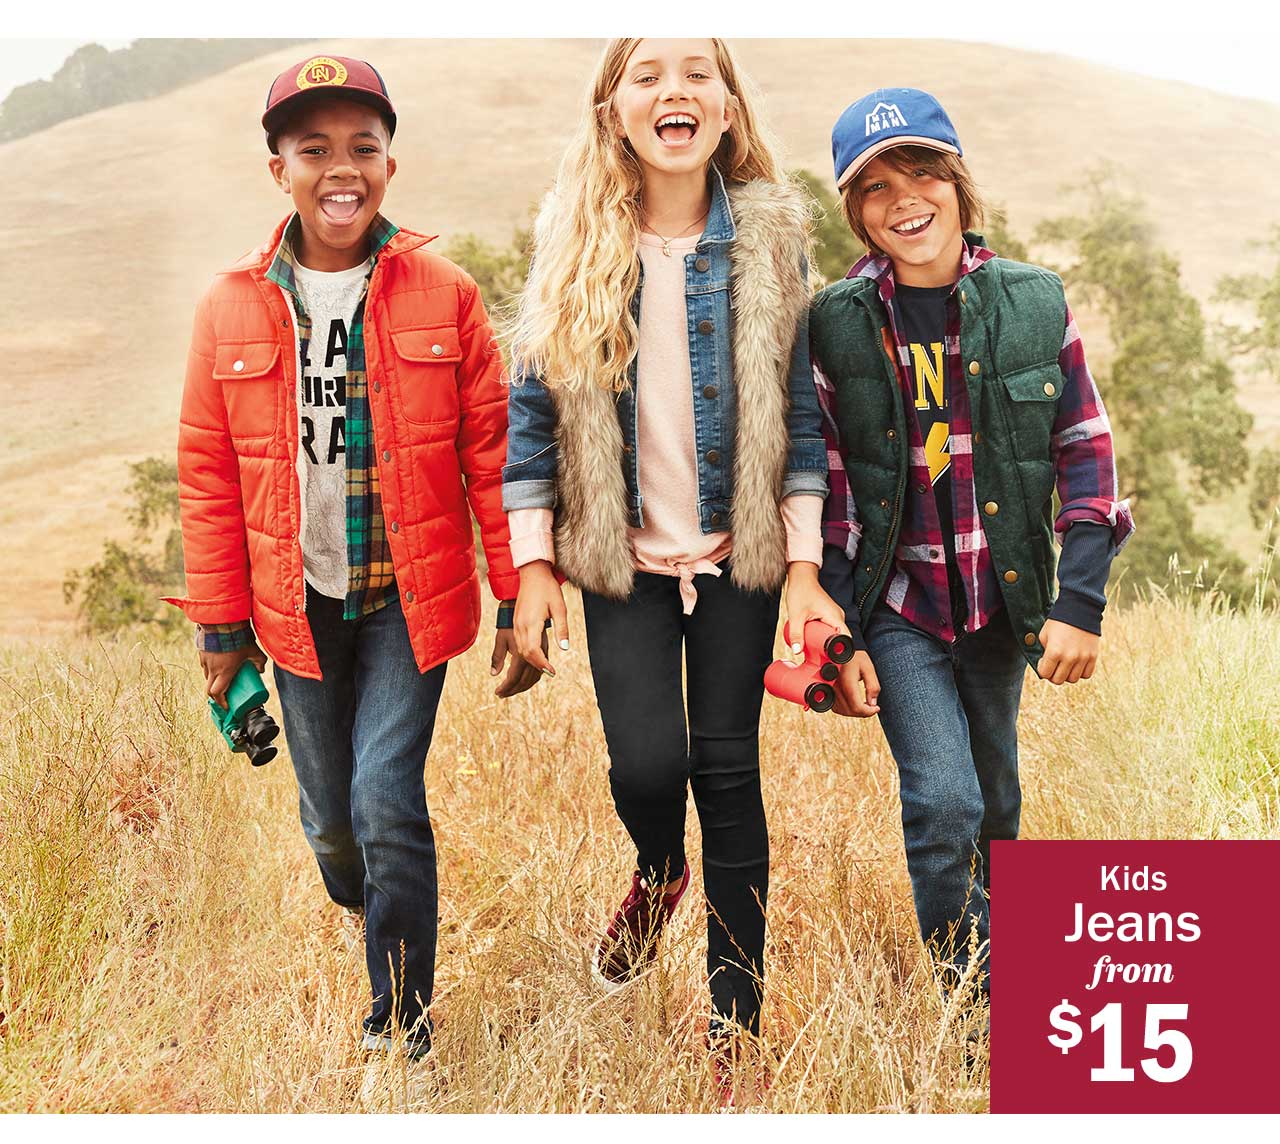 Kids Jeans from $15